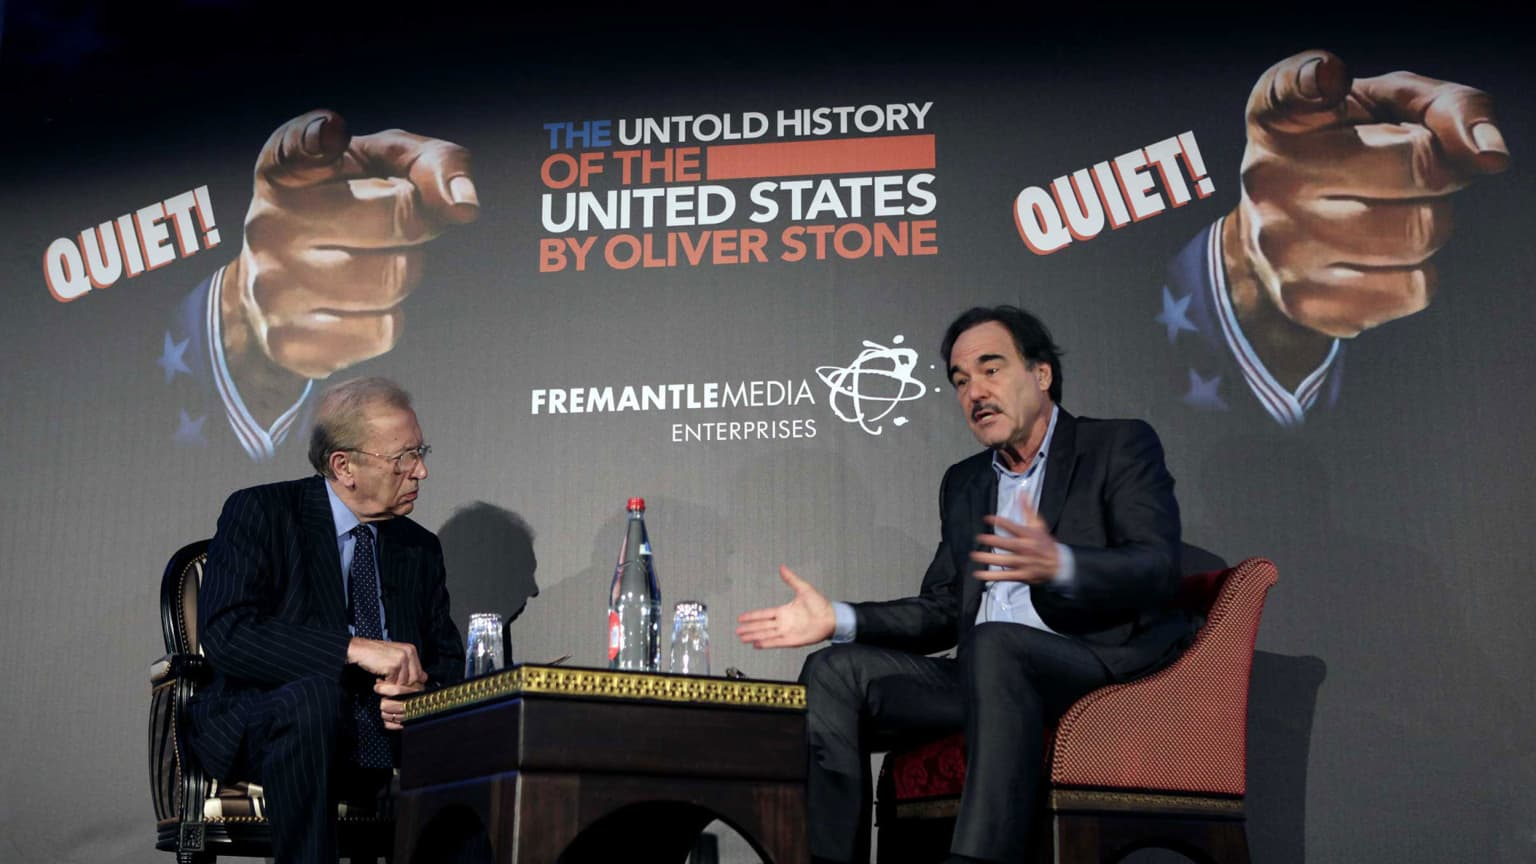 Oliver Stone's Untold History of the United States Campaign